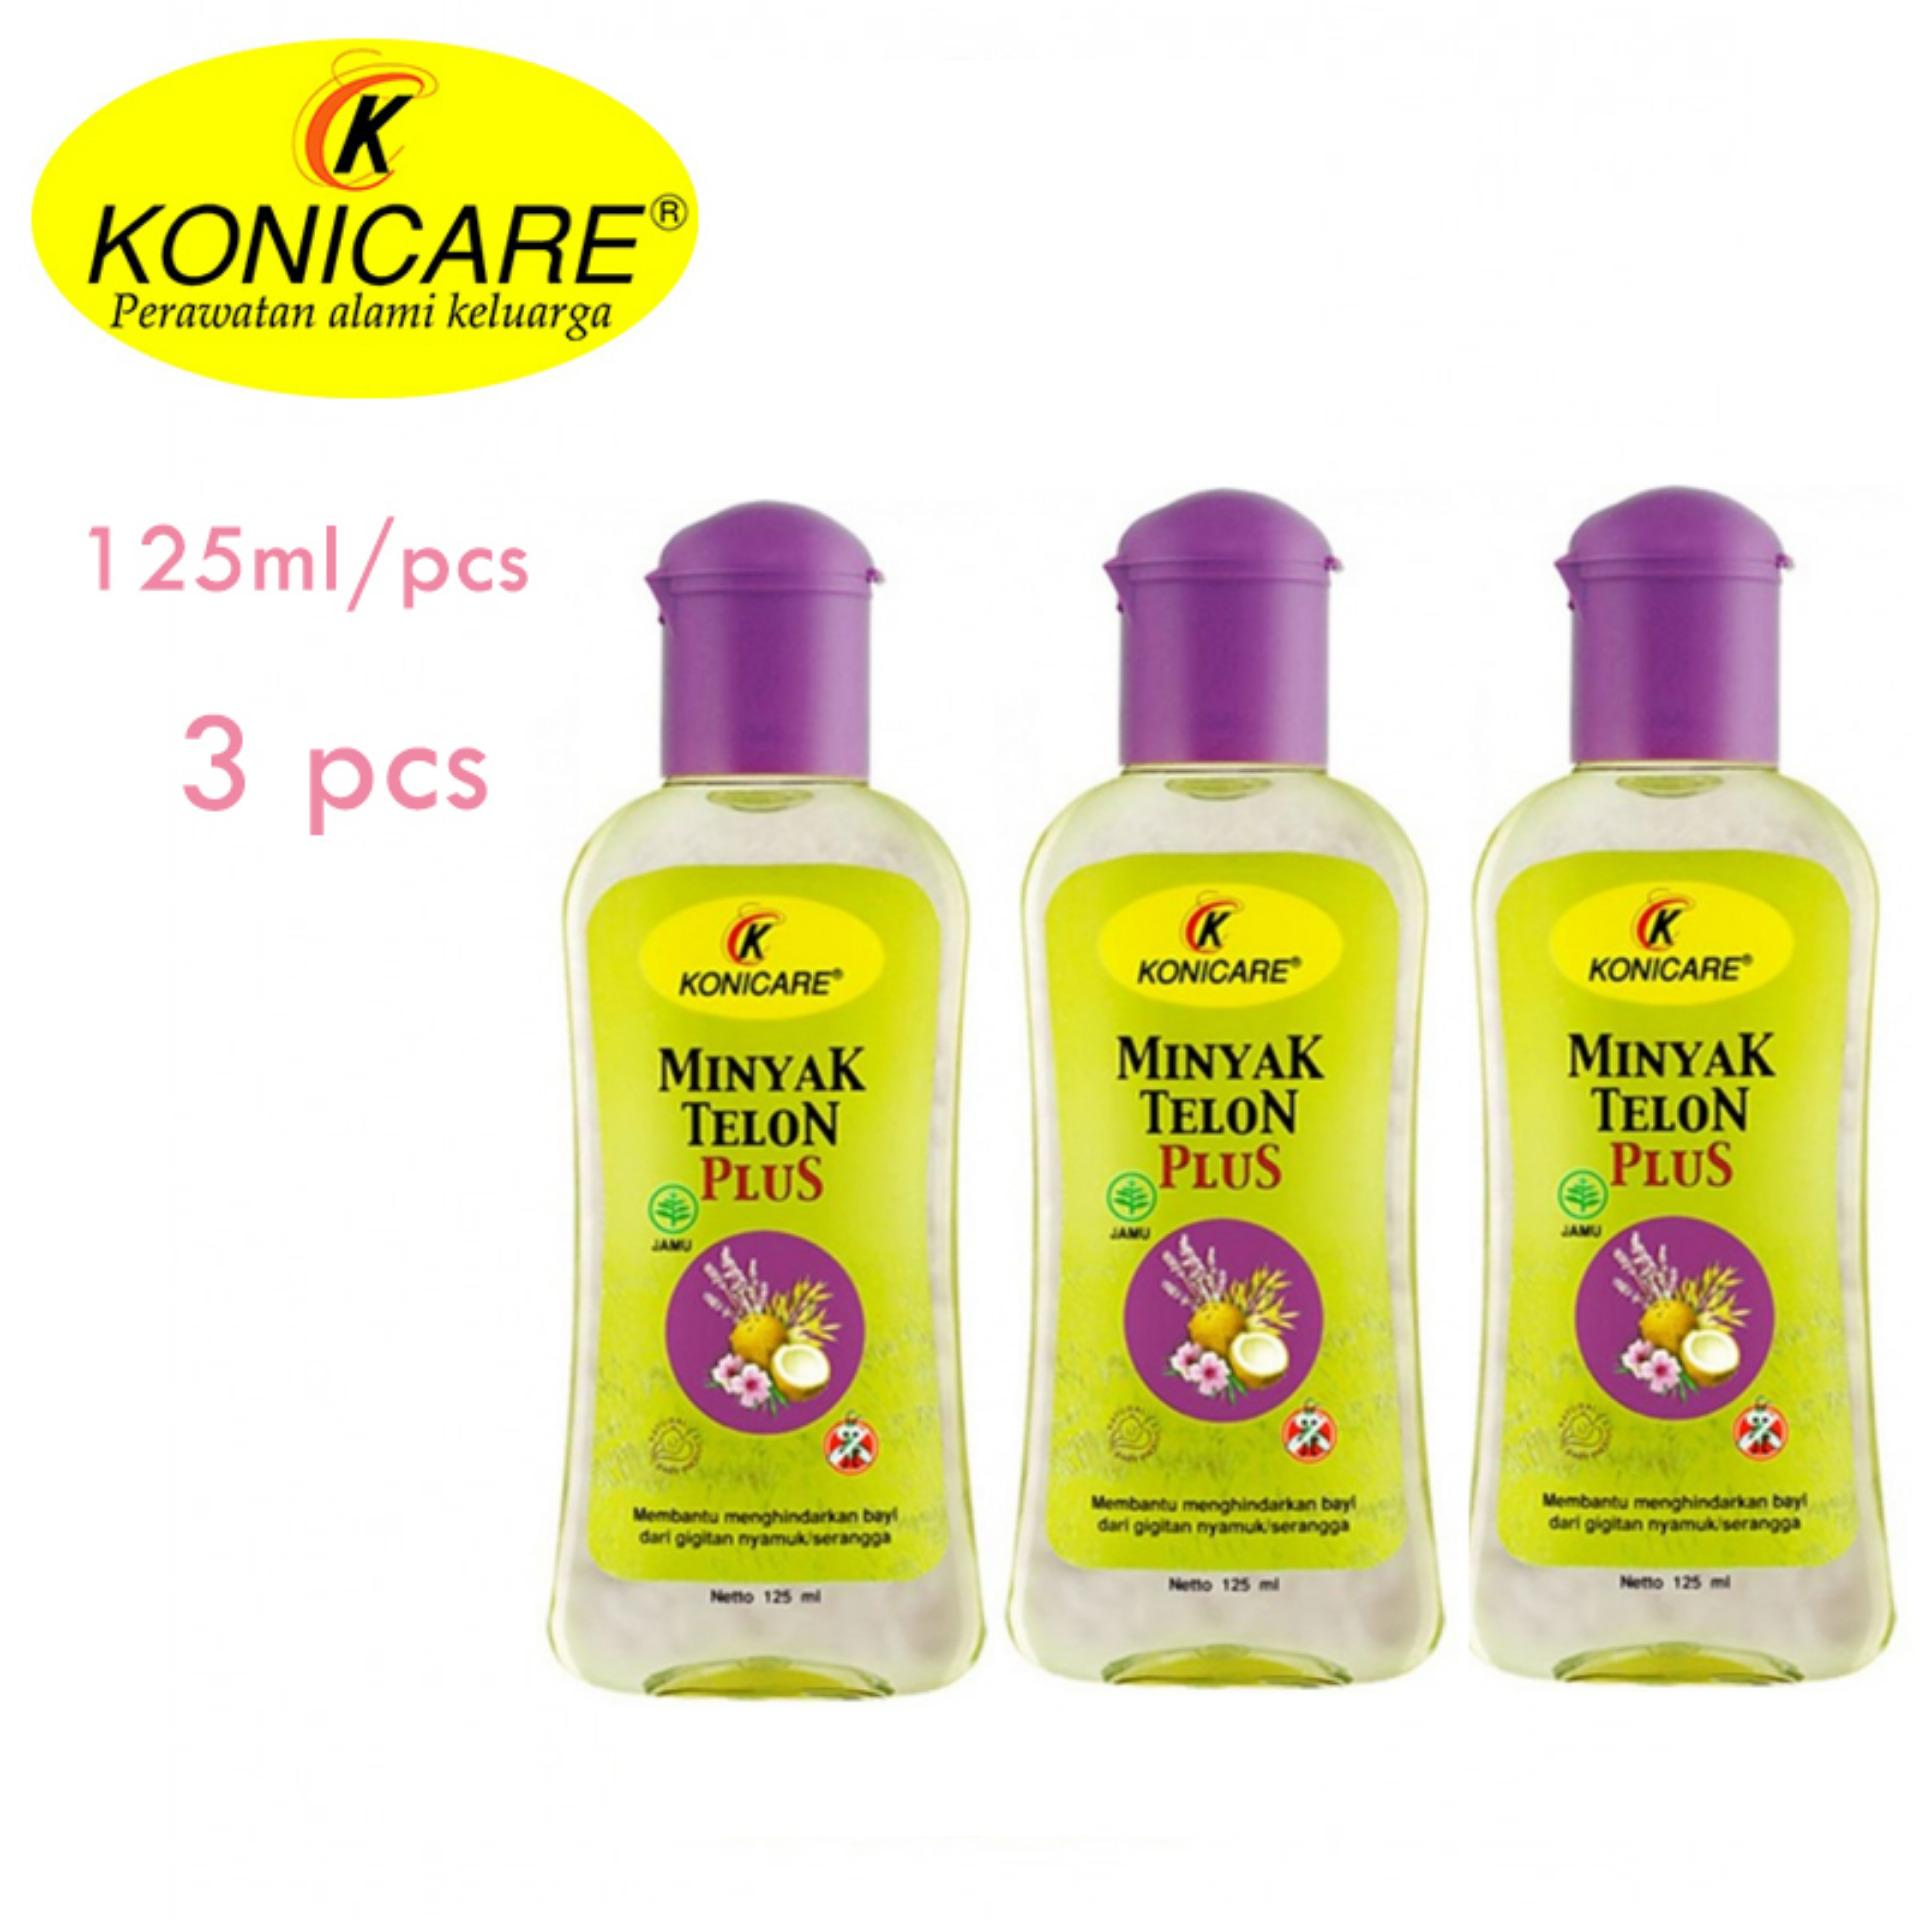 Konicare Minyak Telon Plus 125 Ml ( 3 Pcs ) By Babys Stuff.